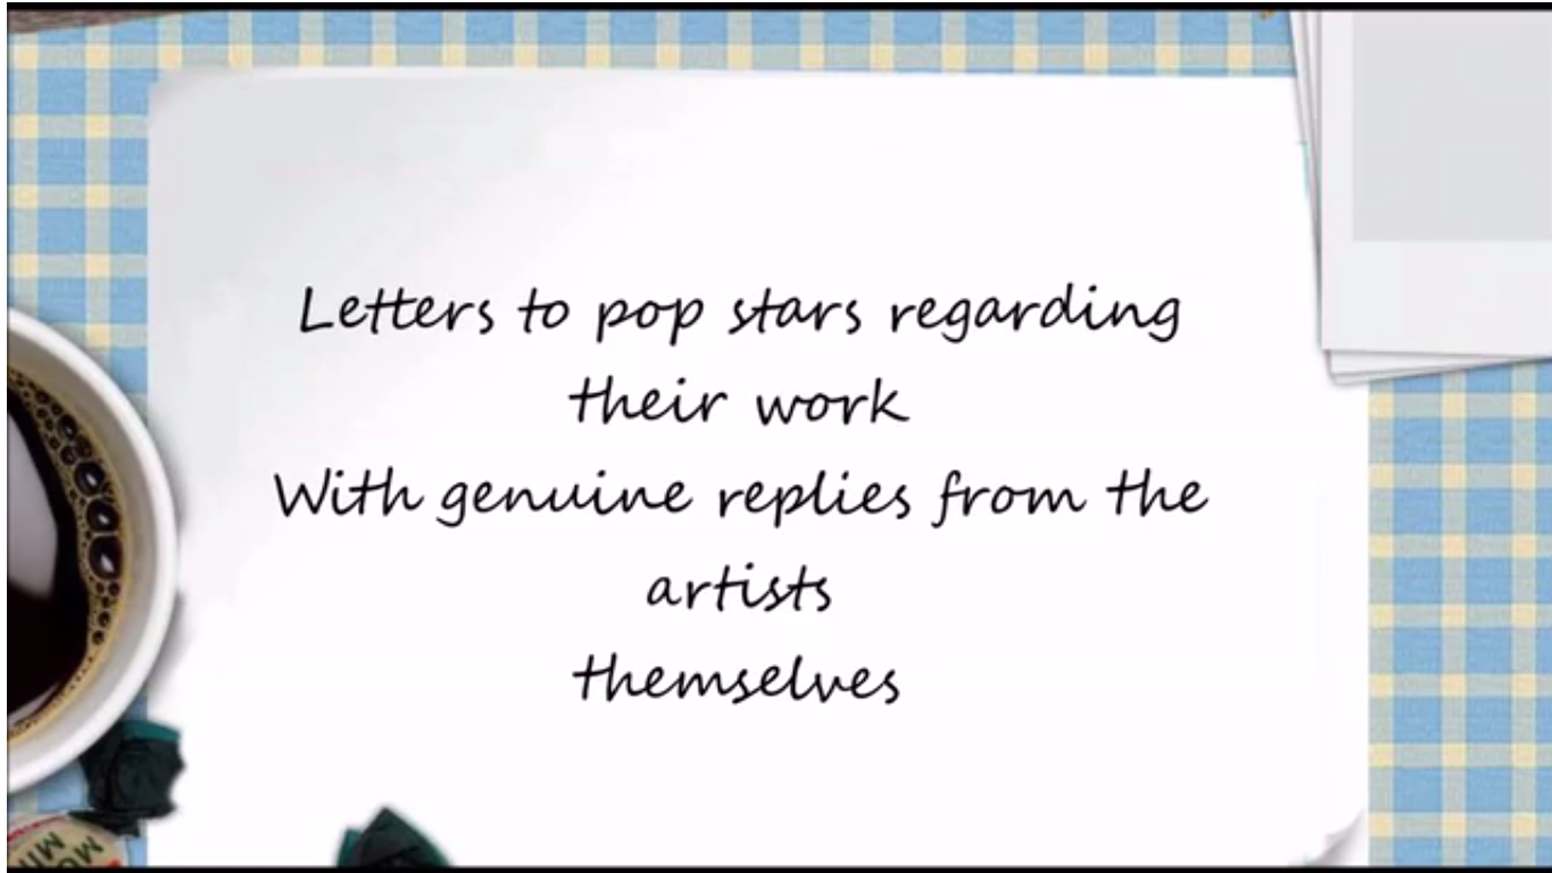 Letters to pop stars regarding their work from a retired member of the public with genuine replies from the artists themselves